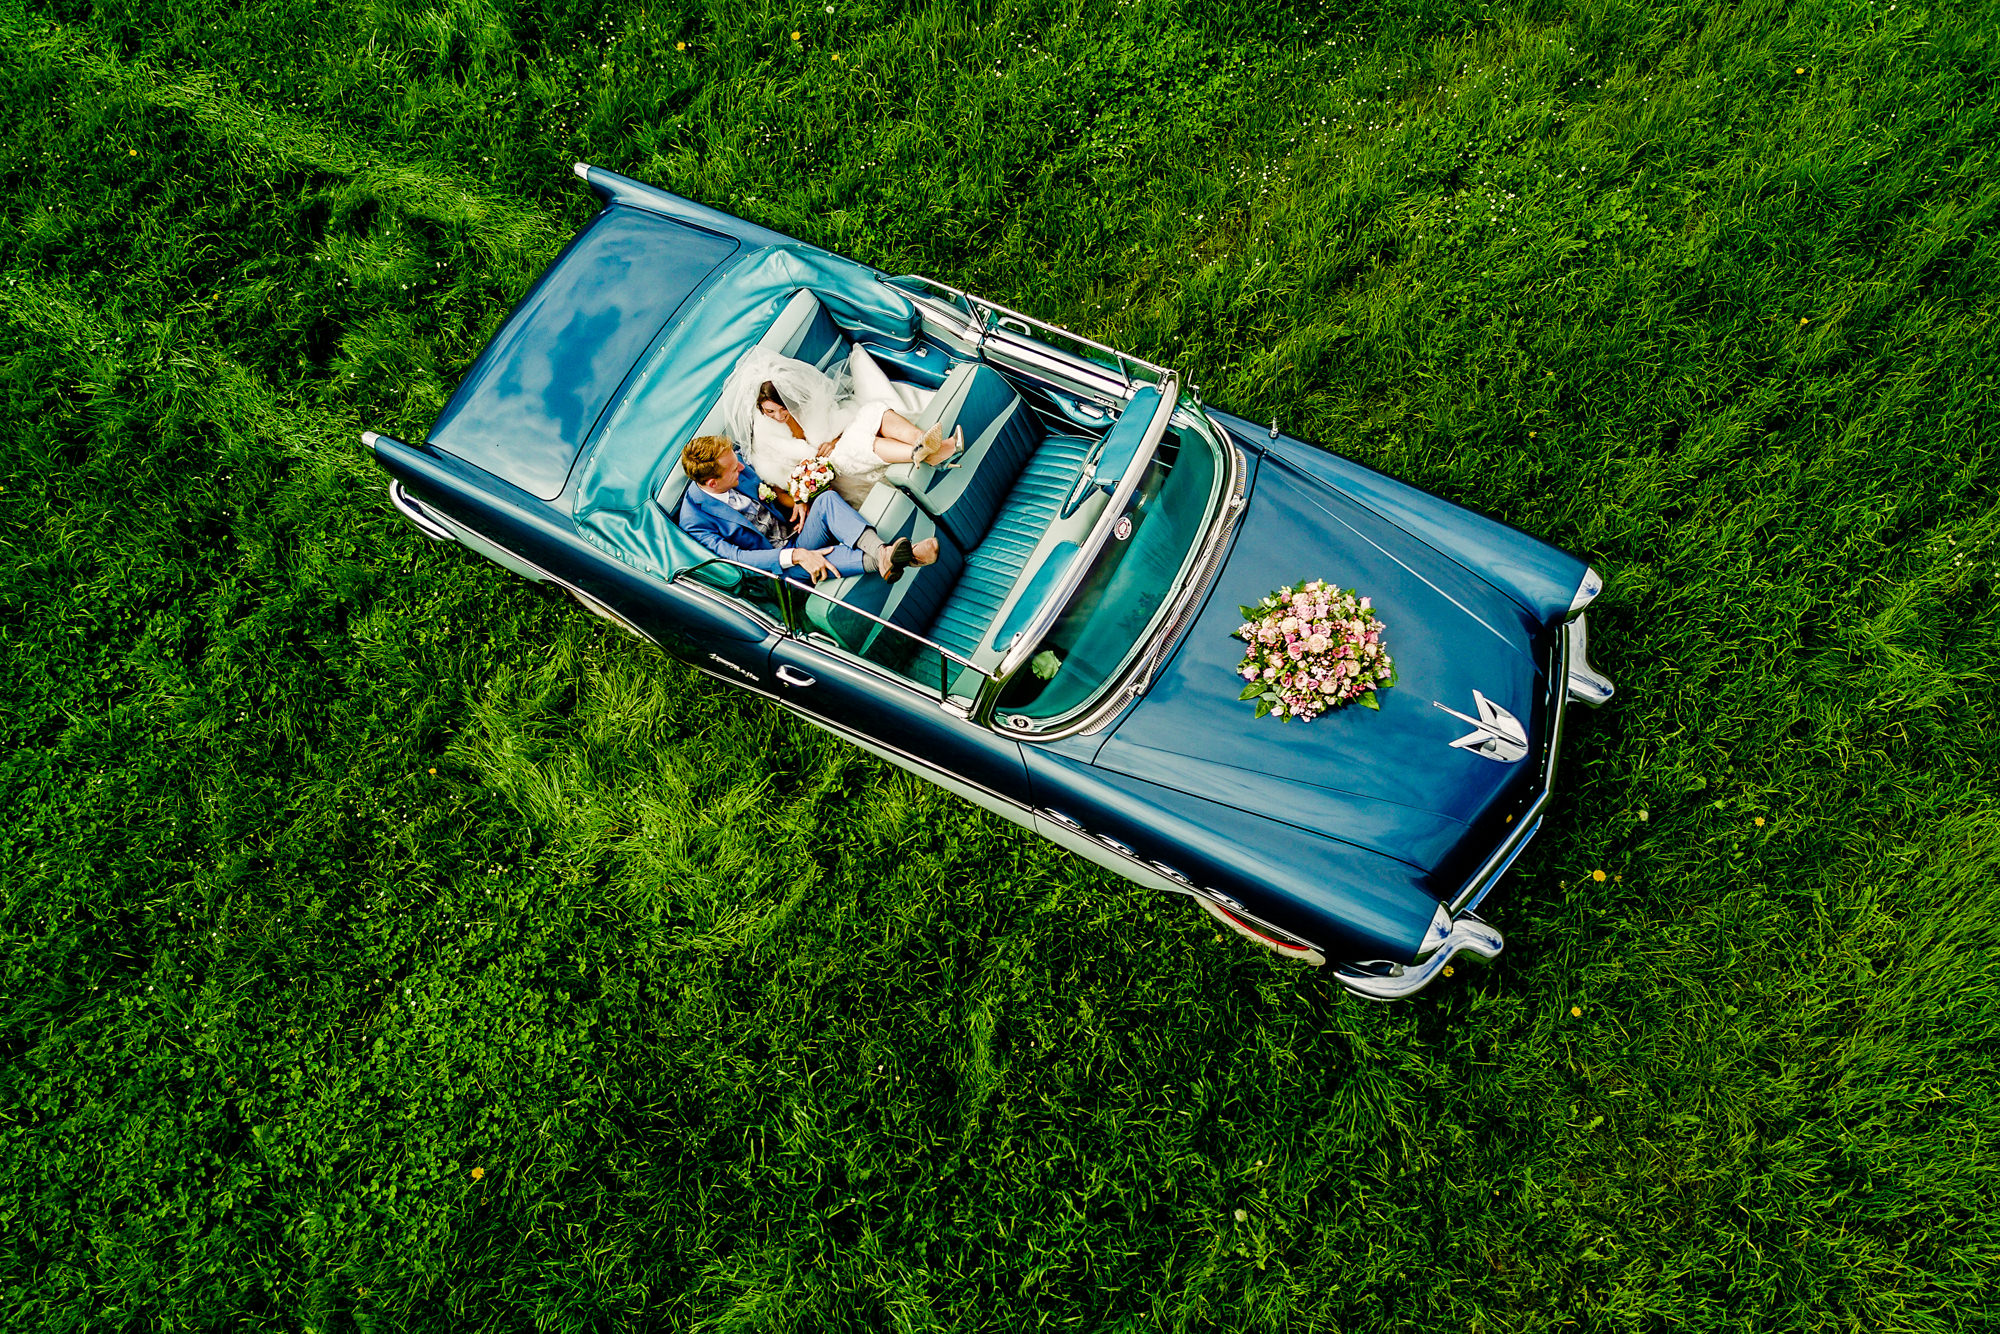 Bride and groom make their getaway in teal convertible Cadillac Deville - drone photo by Eppel Photography